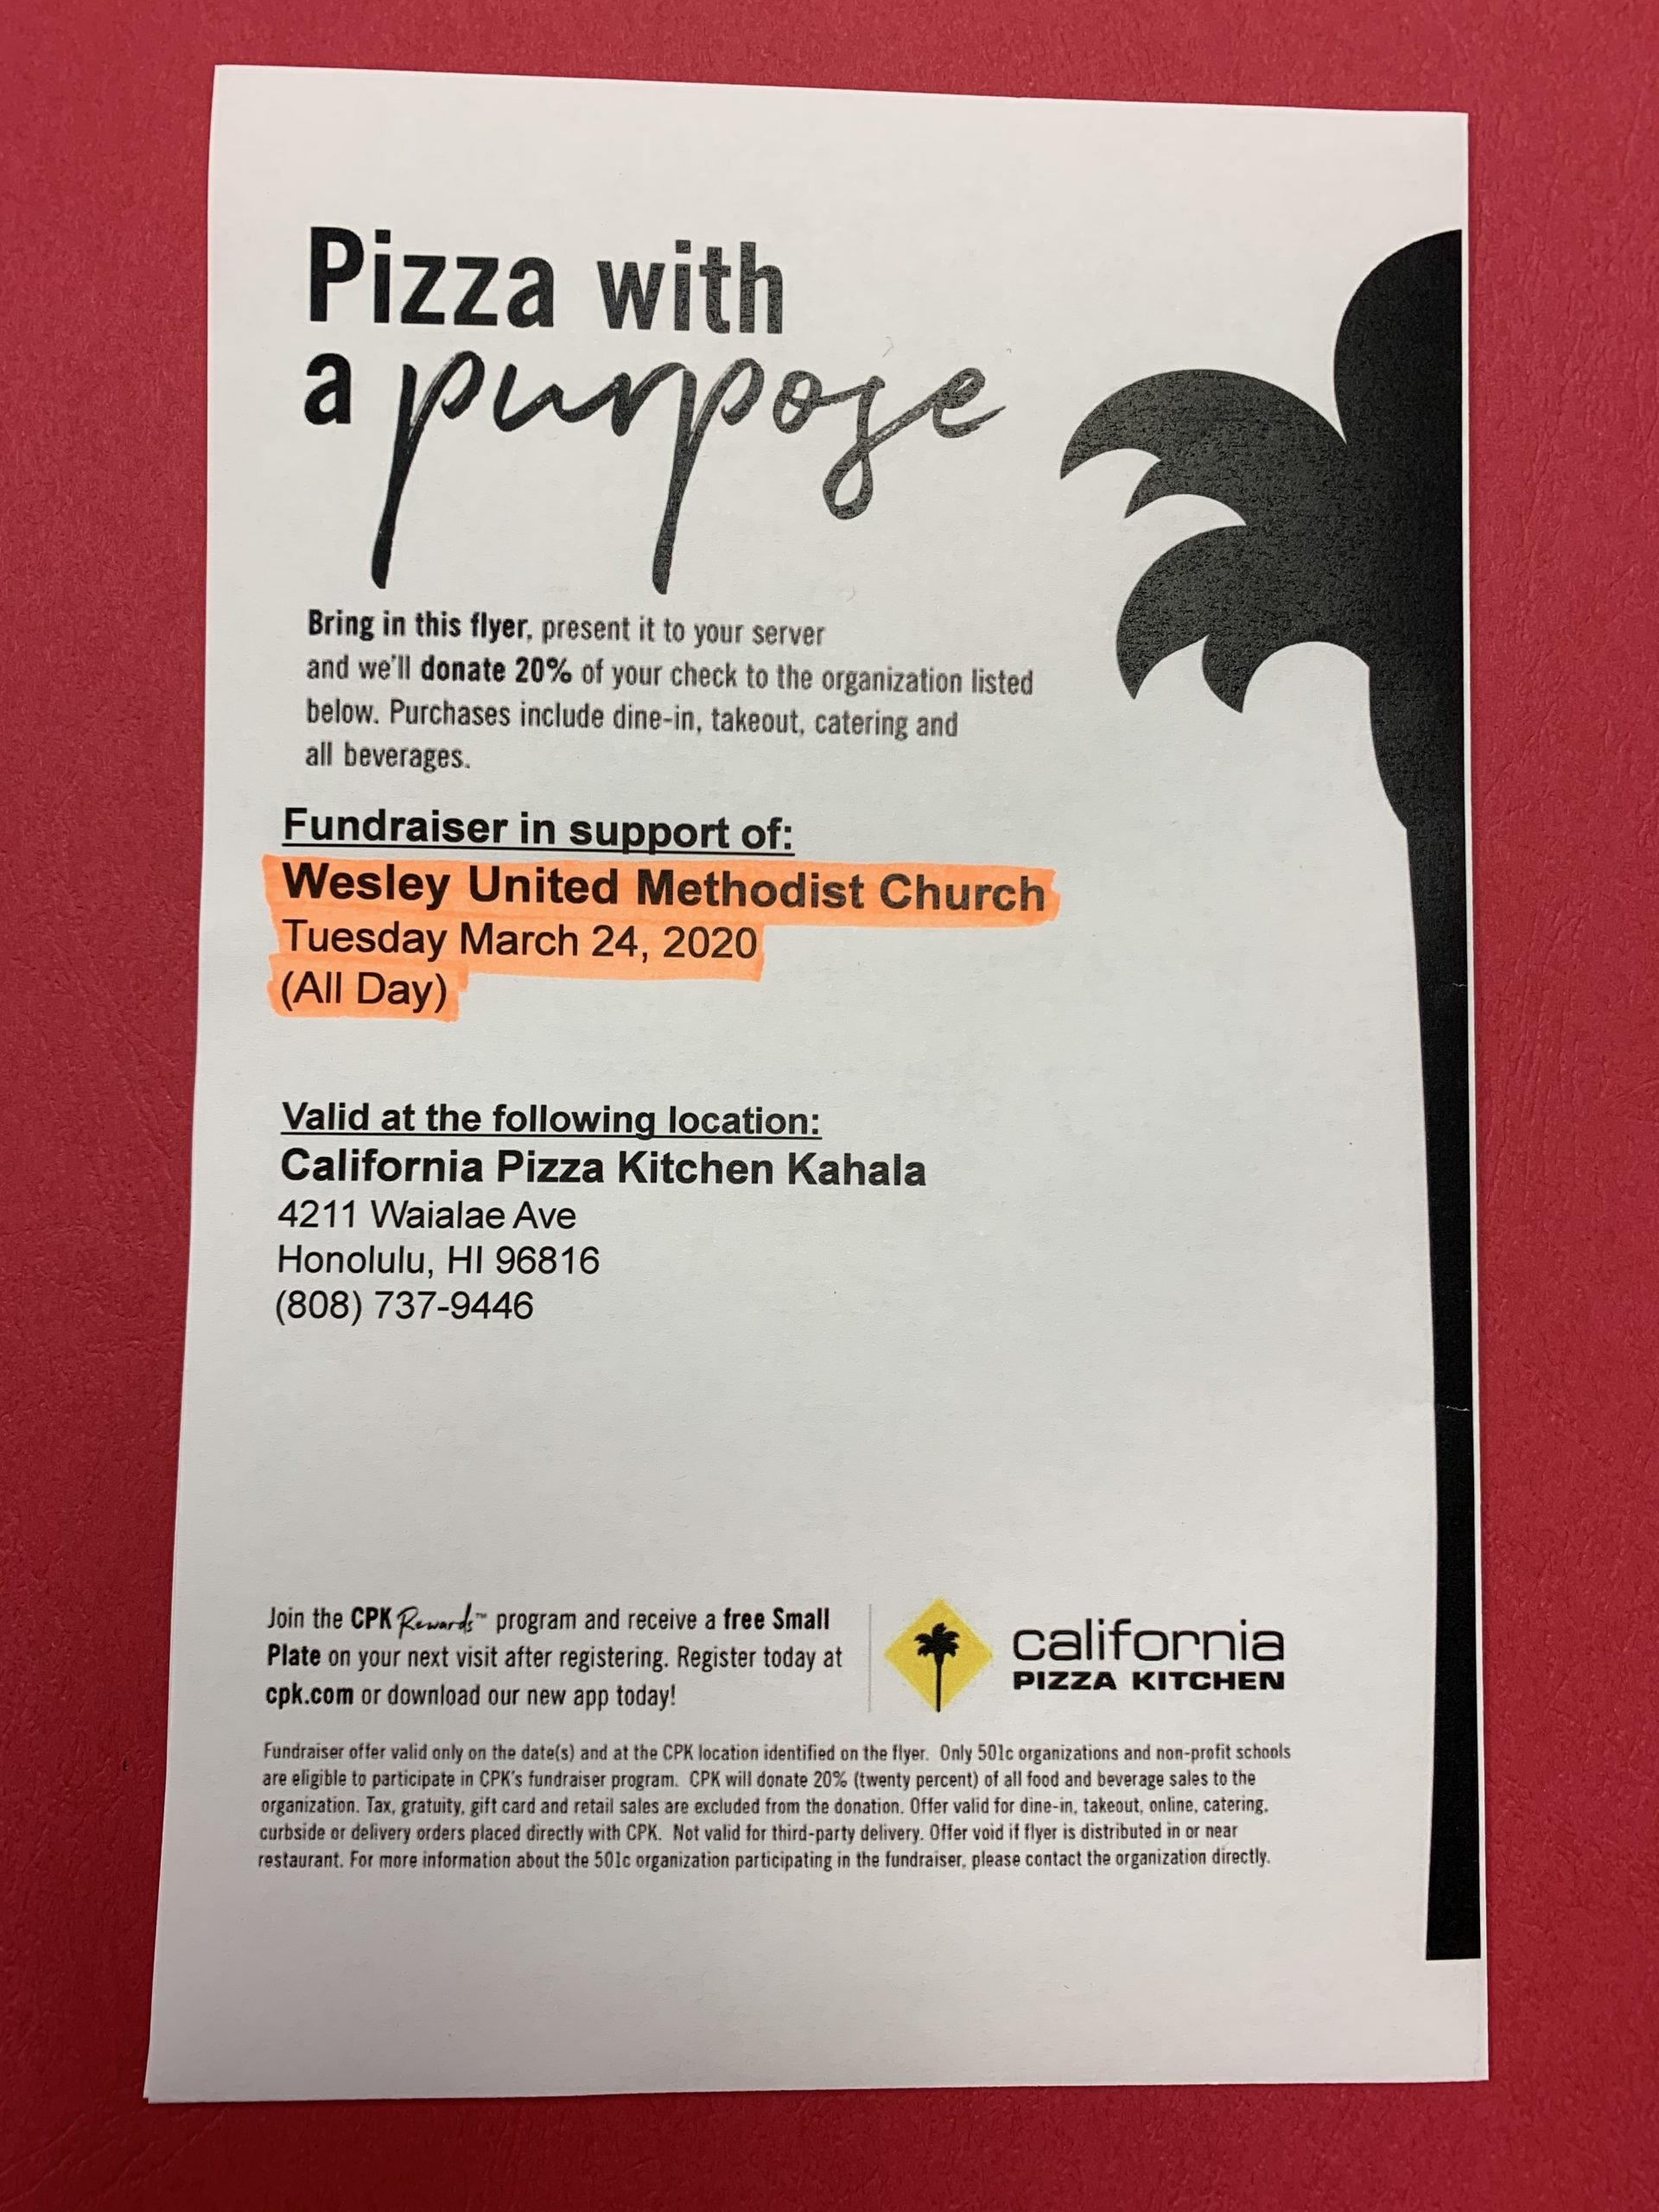 California Pizza Kitchen Fundraising Event